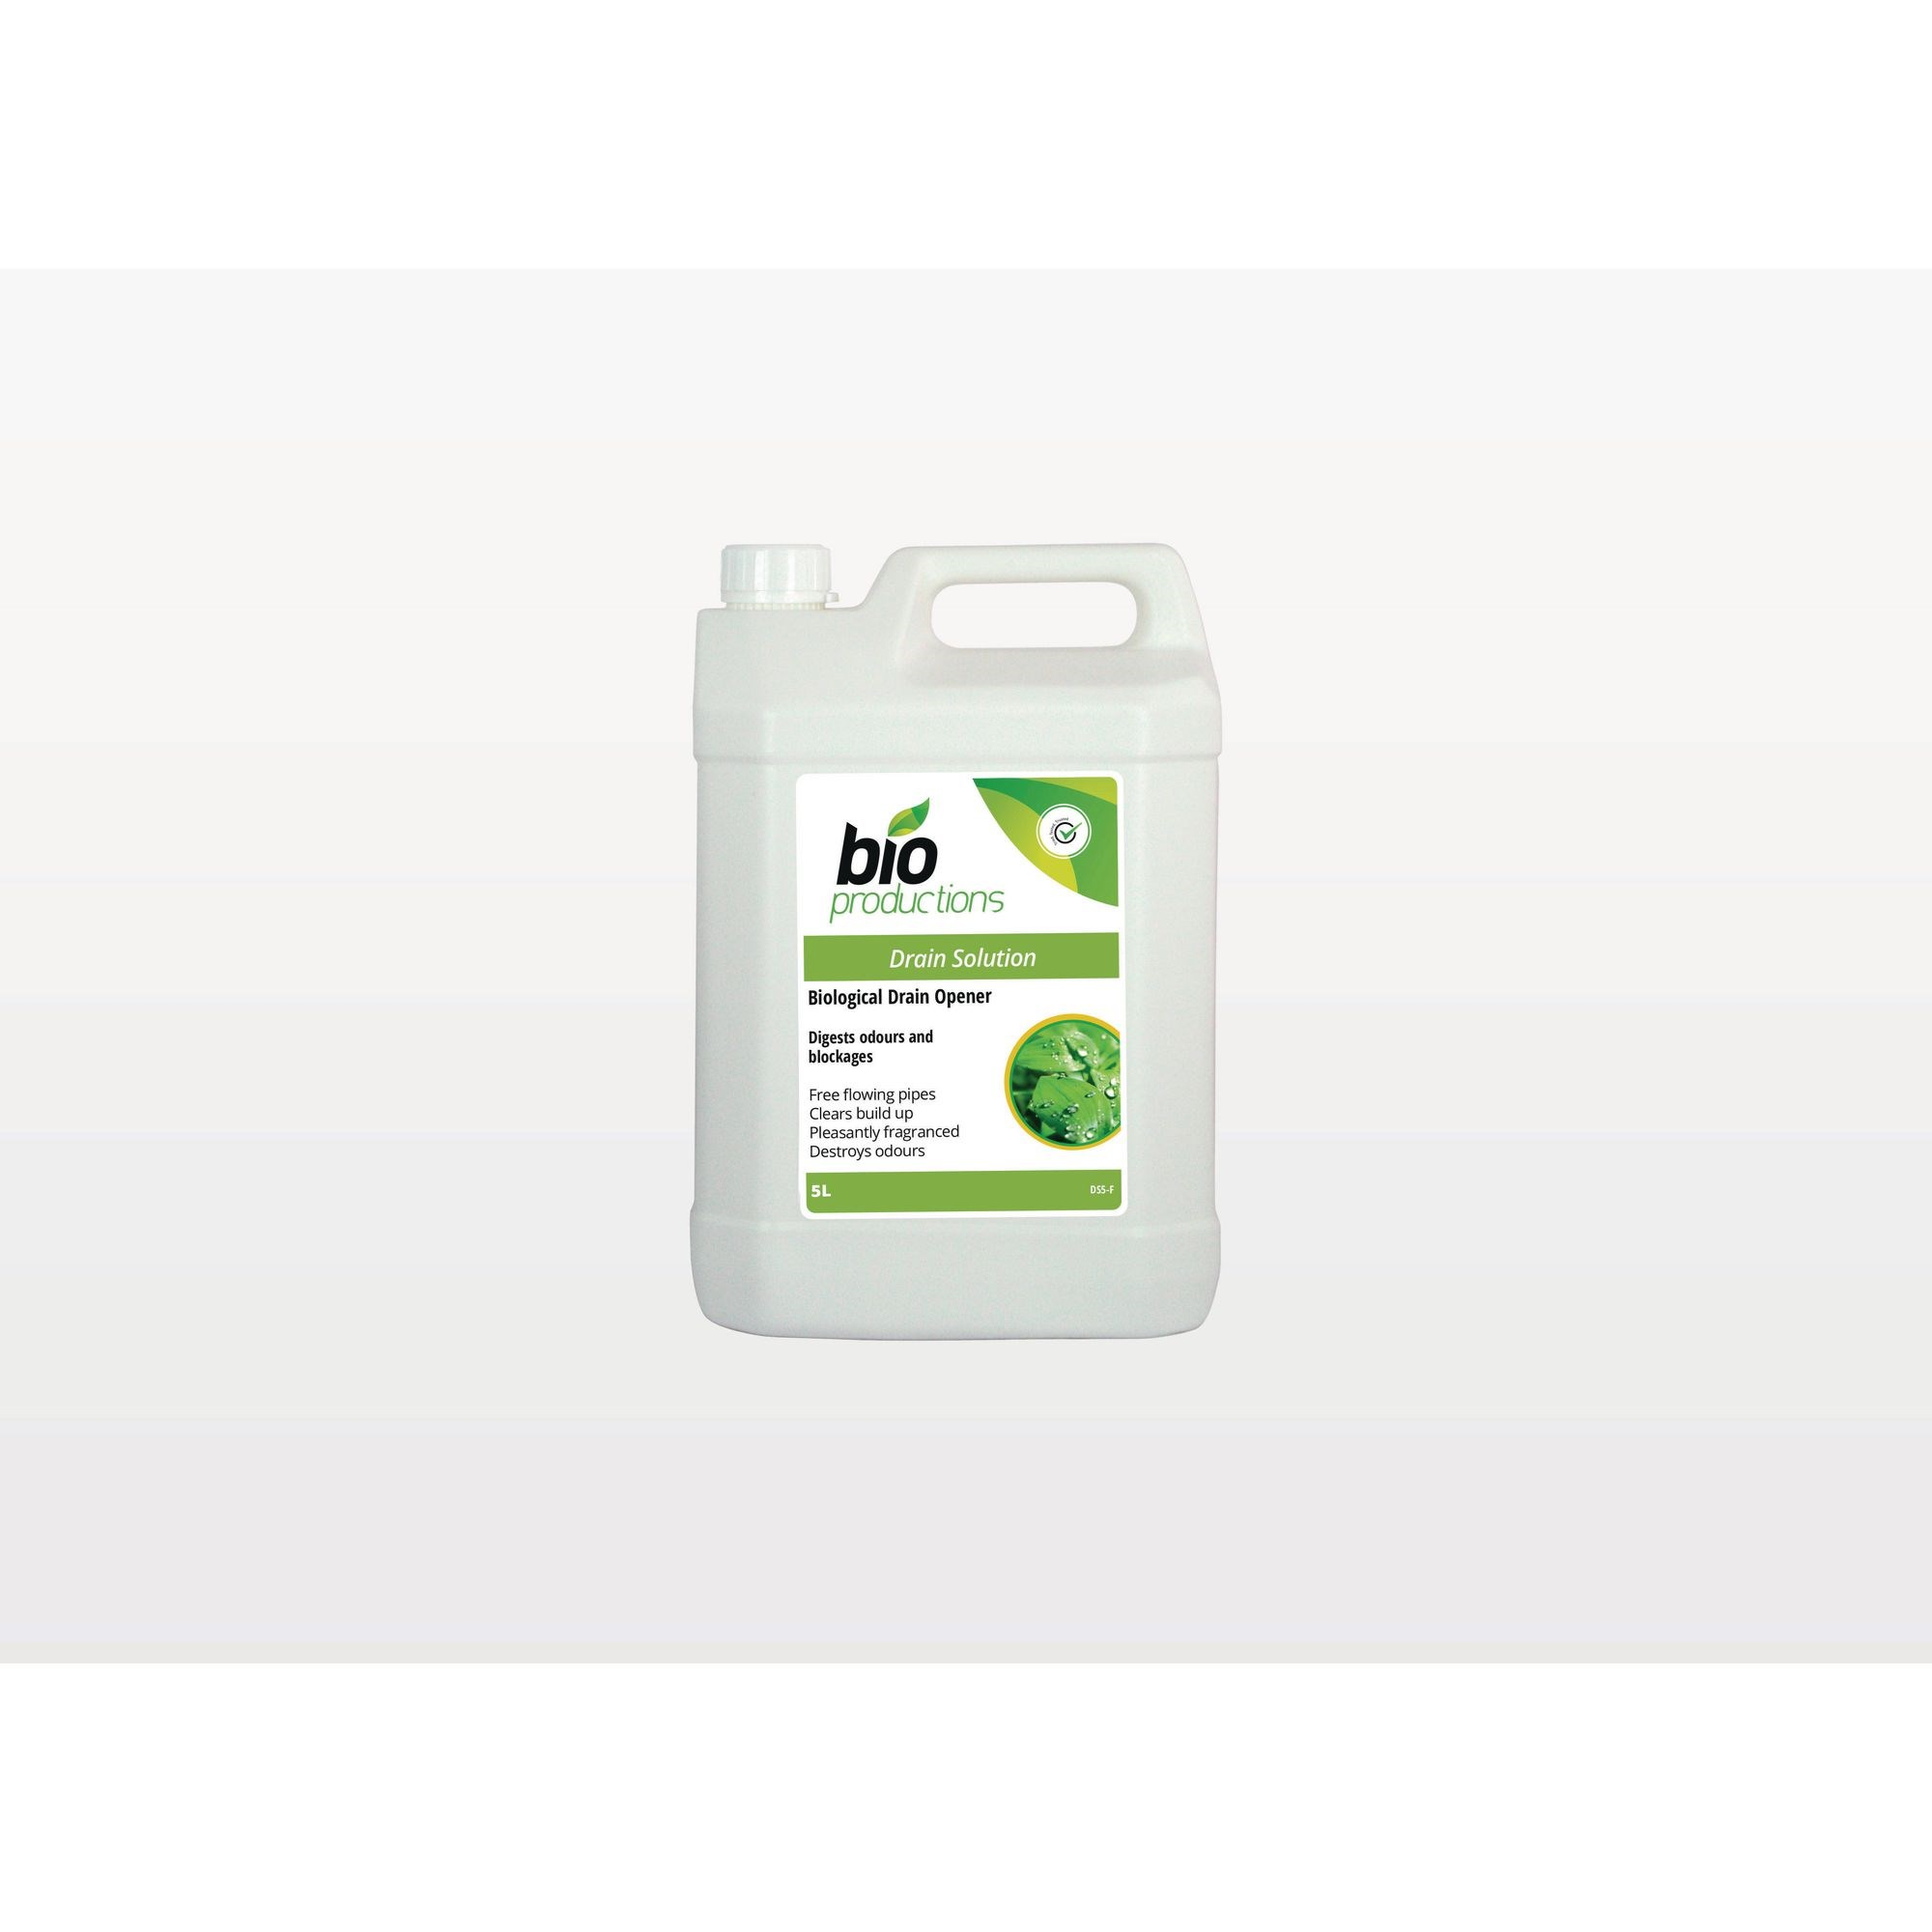 Drain Solution 5L (Pack of 2)